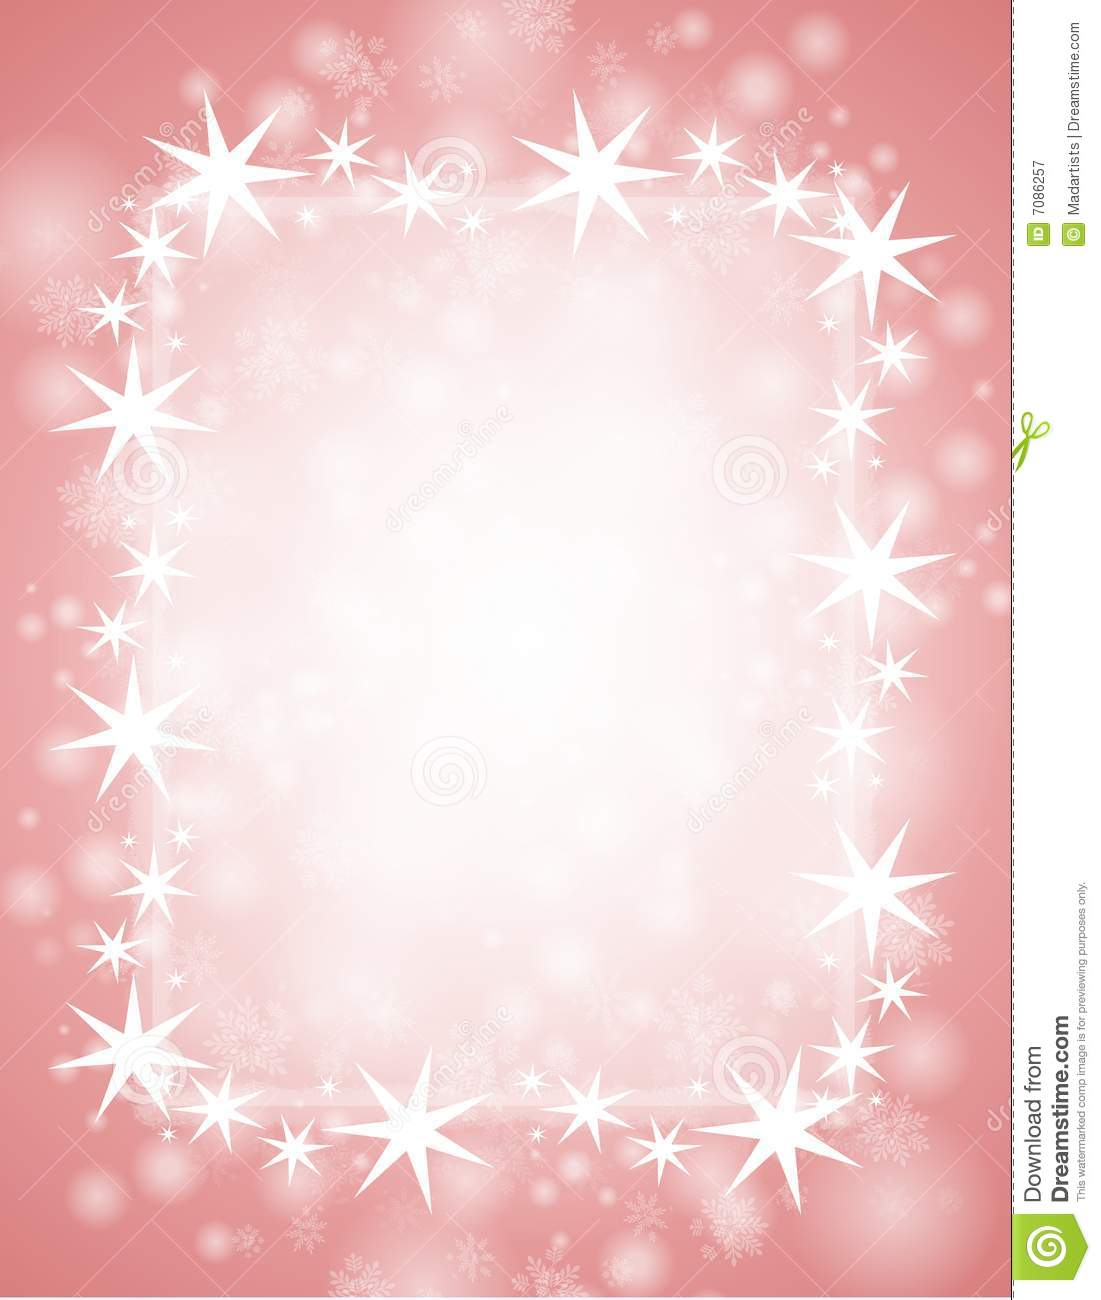 soft snowflake designs and textures with a winter or Christmas theme ...